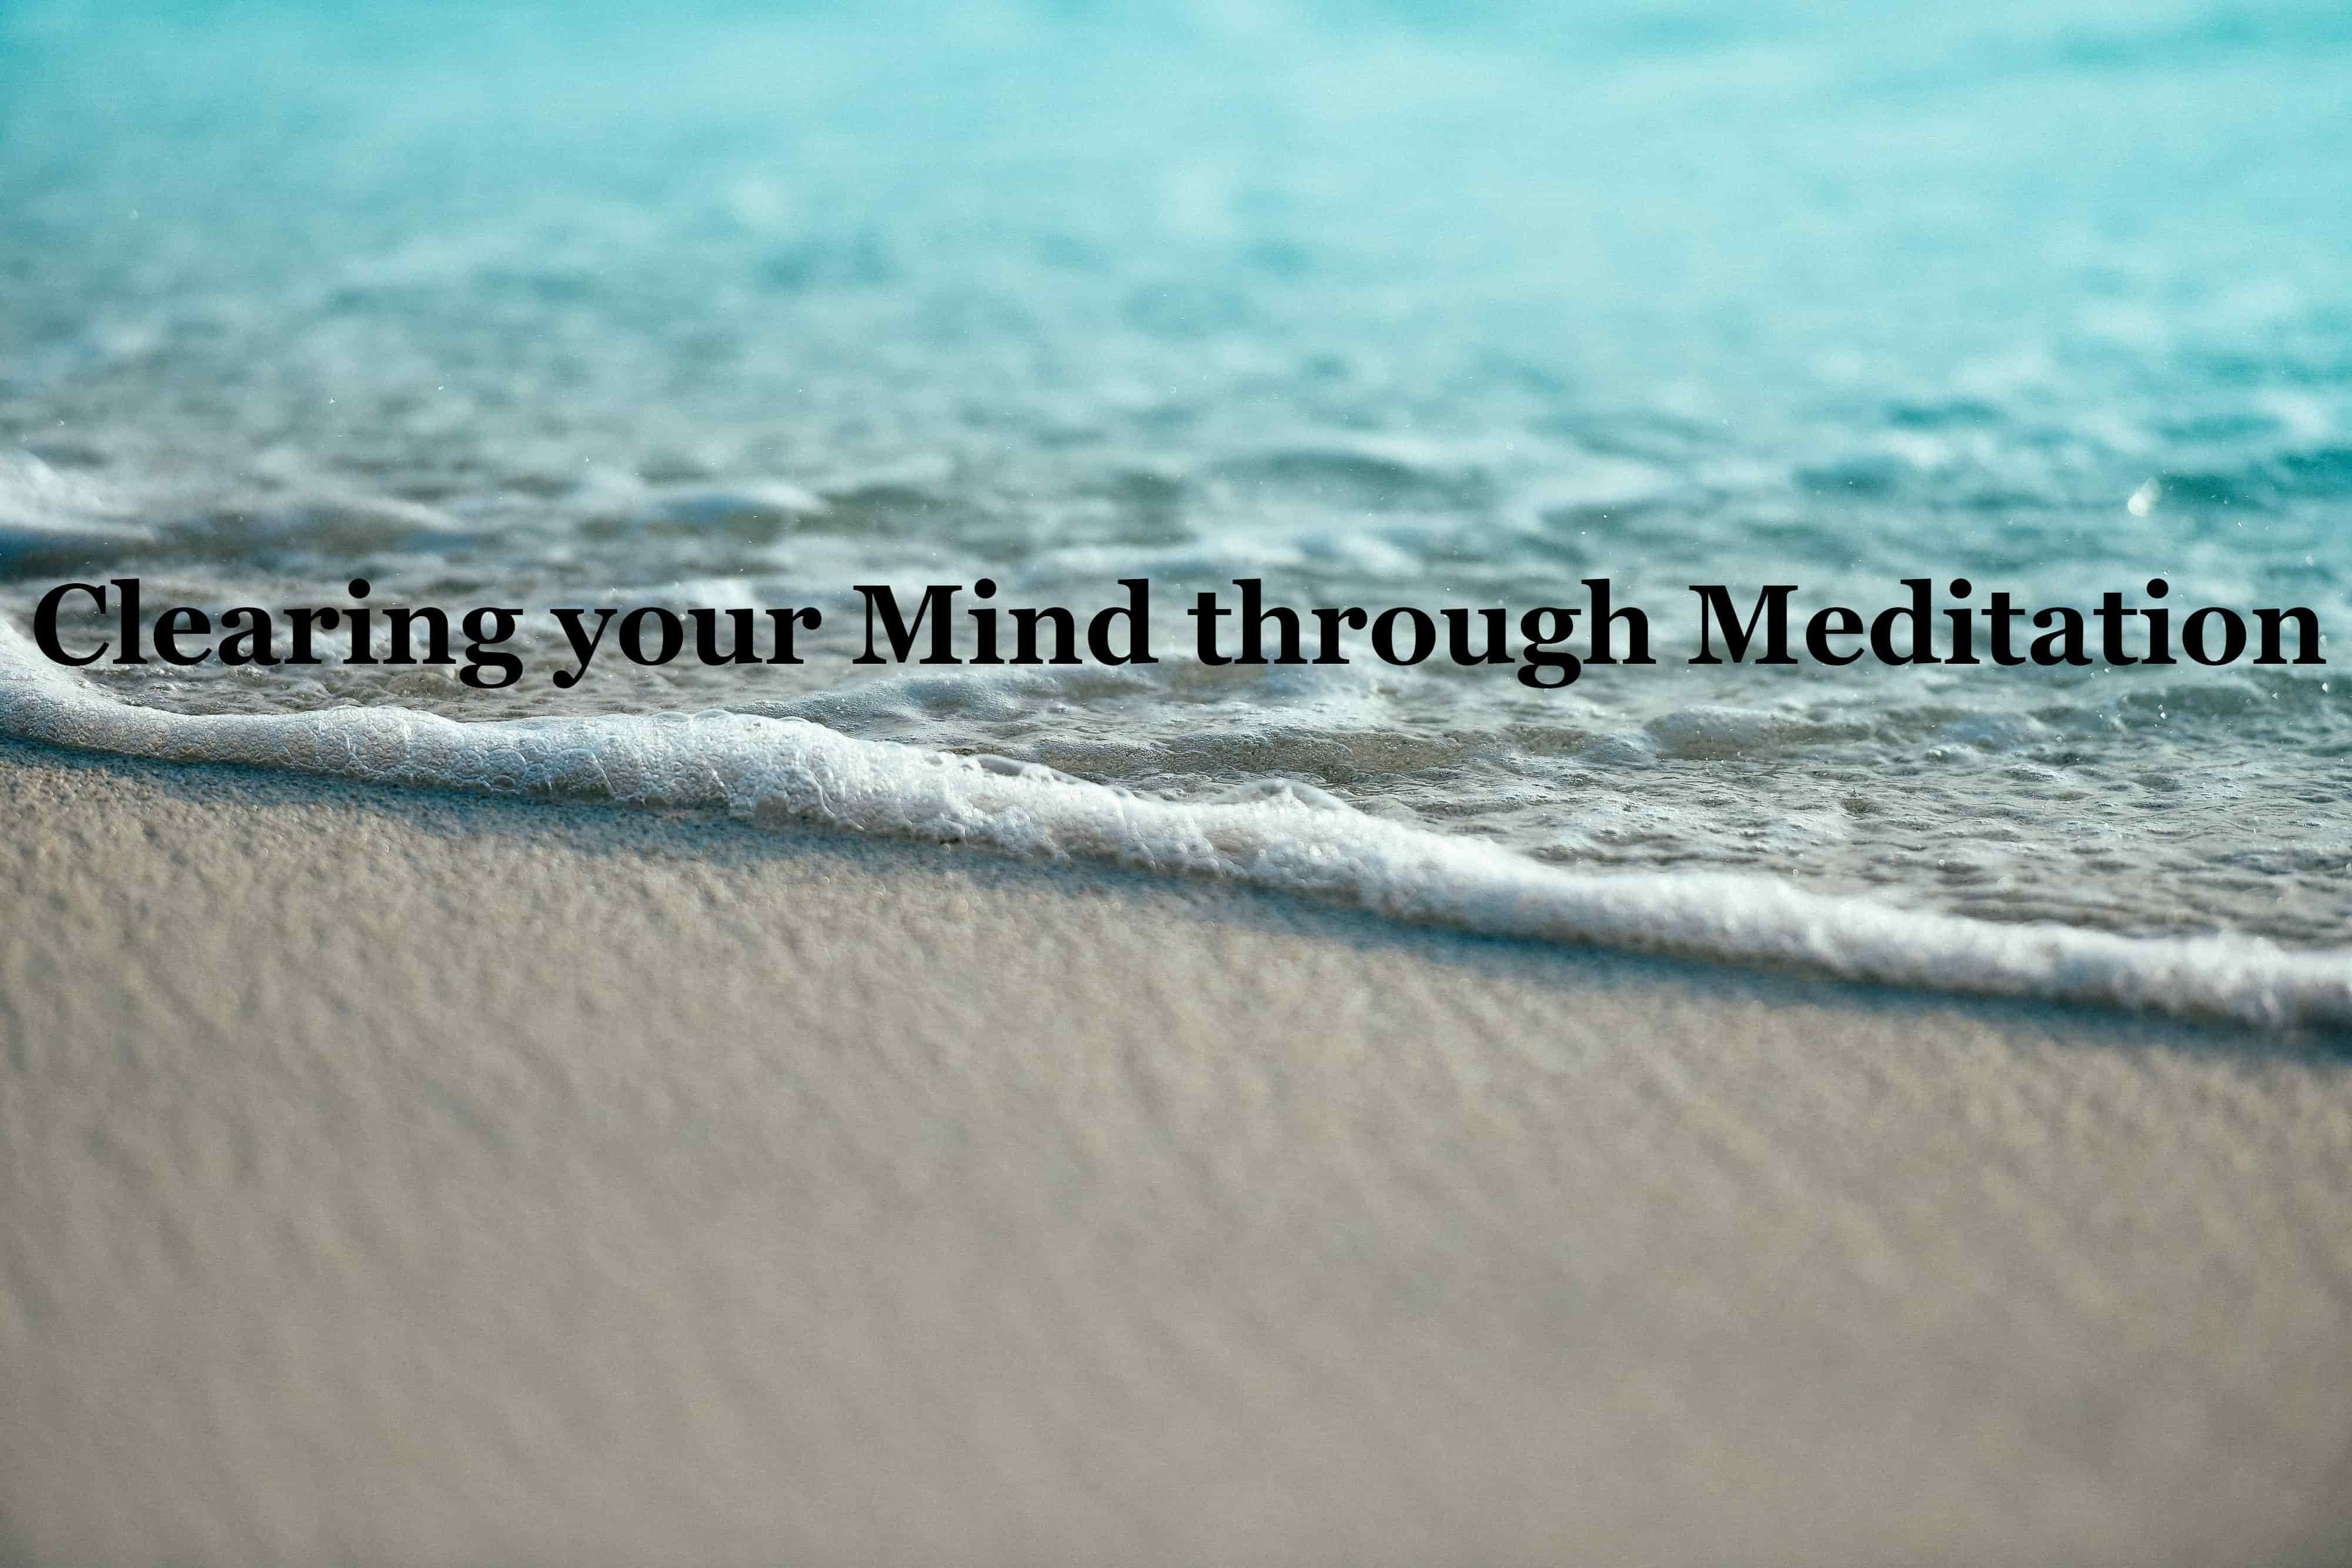 Clearing your Mind through Meditation